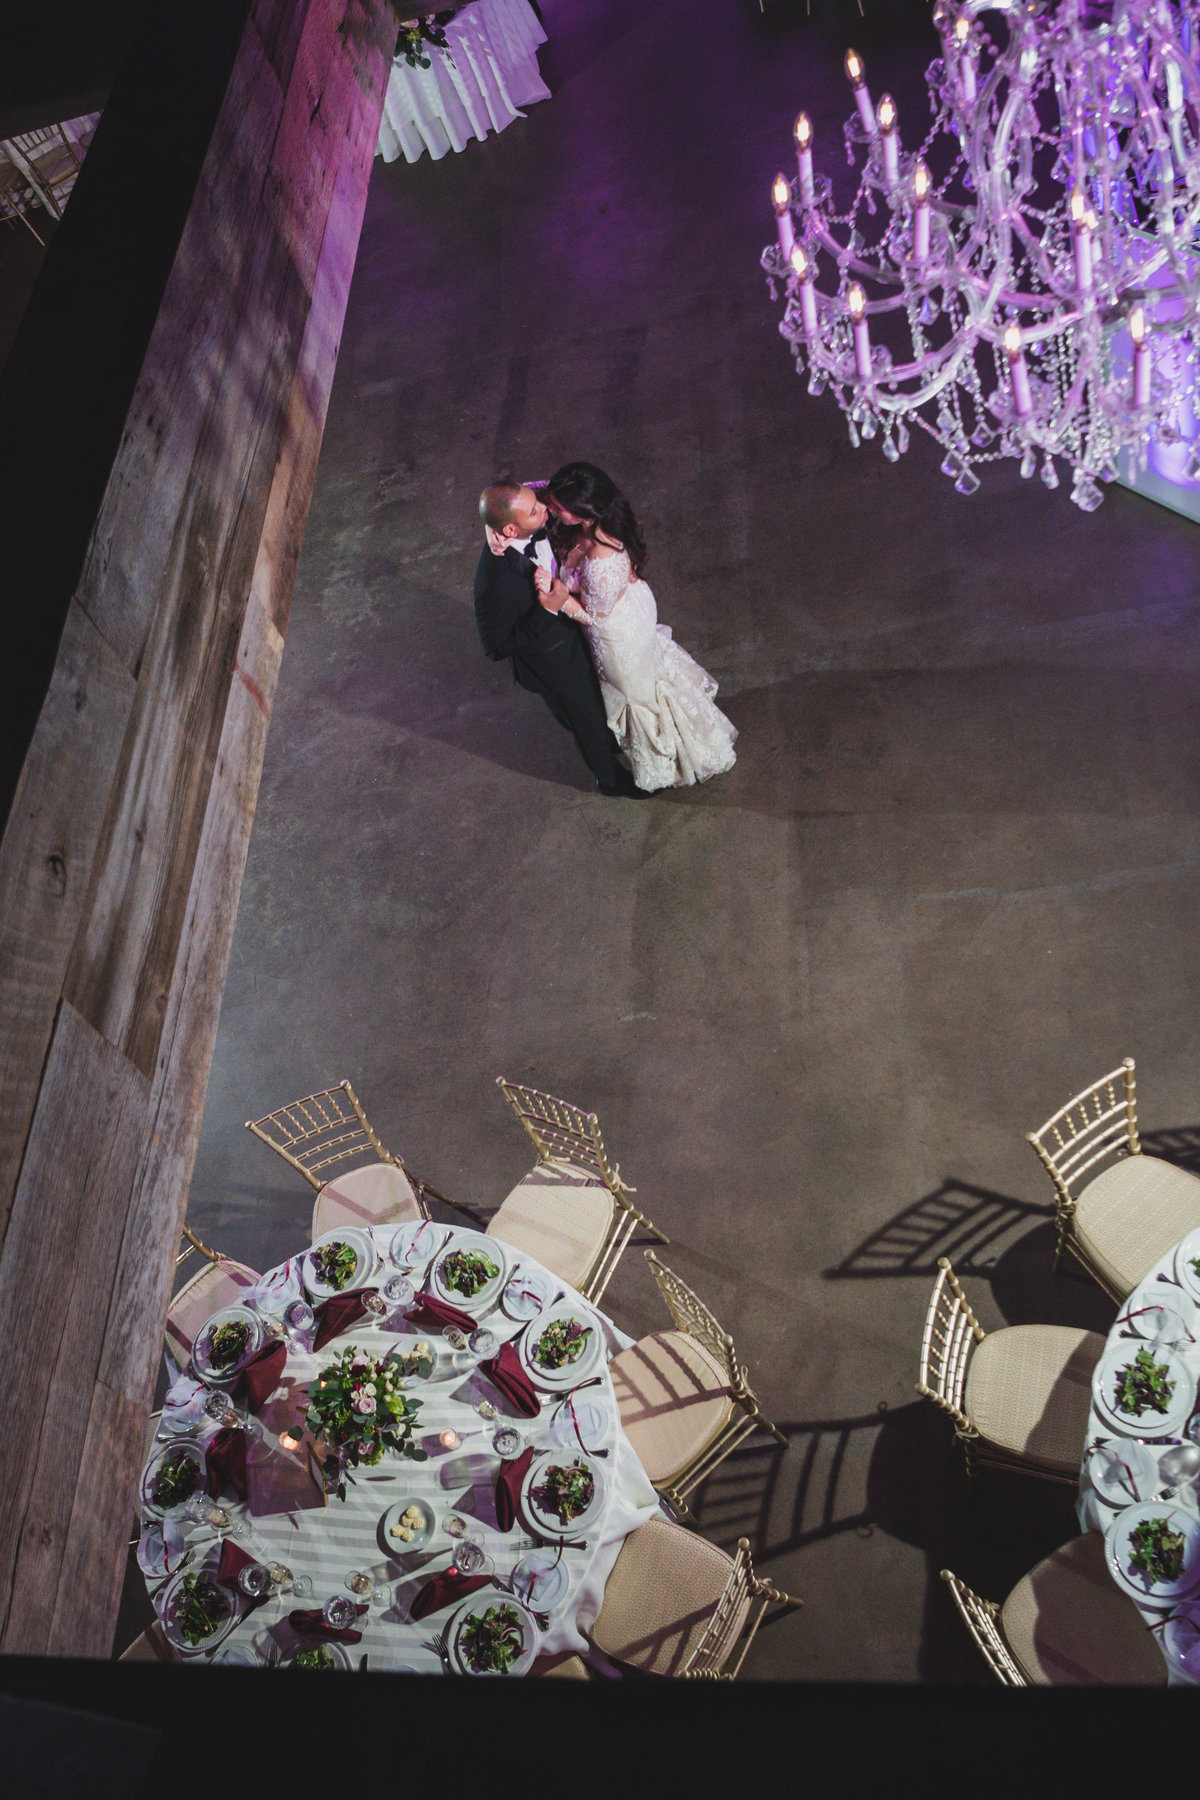 wedding photo of bride and groom dancing and holding each other during reception at The Loft by Bridgeview